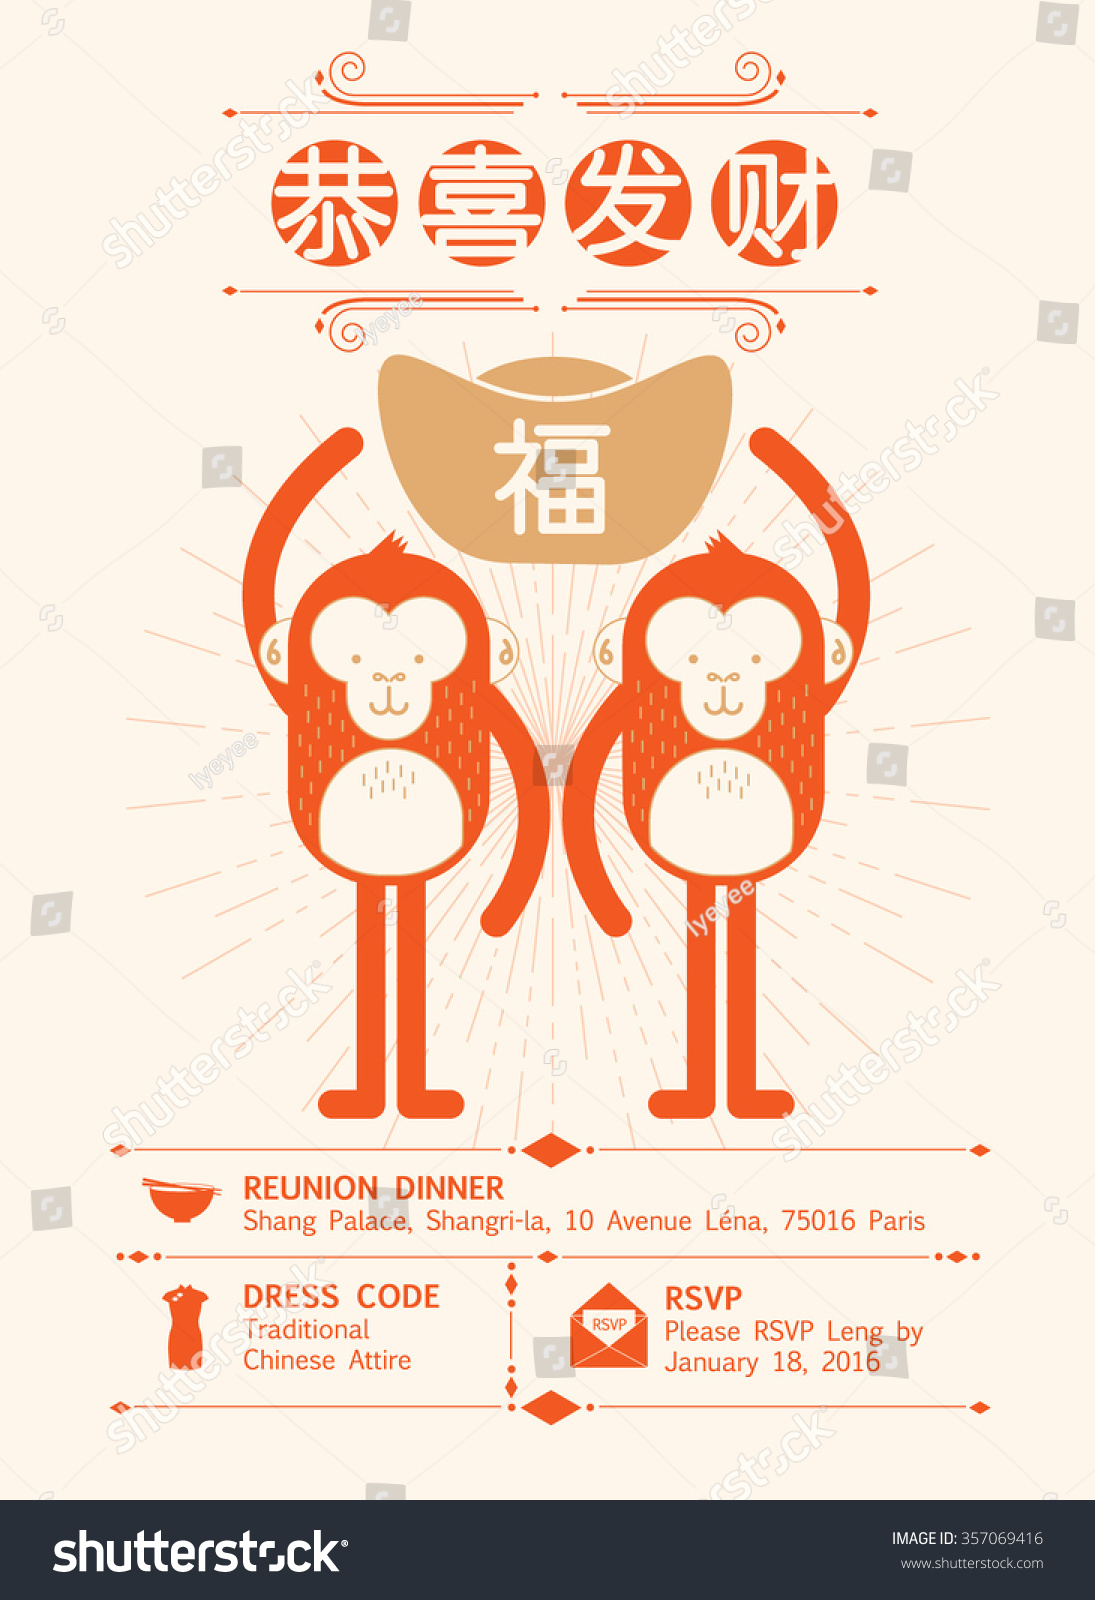 Chinese Calendar Illustration : Chinese calendar new year stock vector